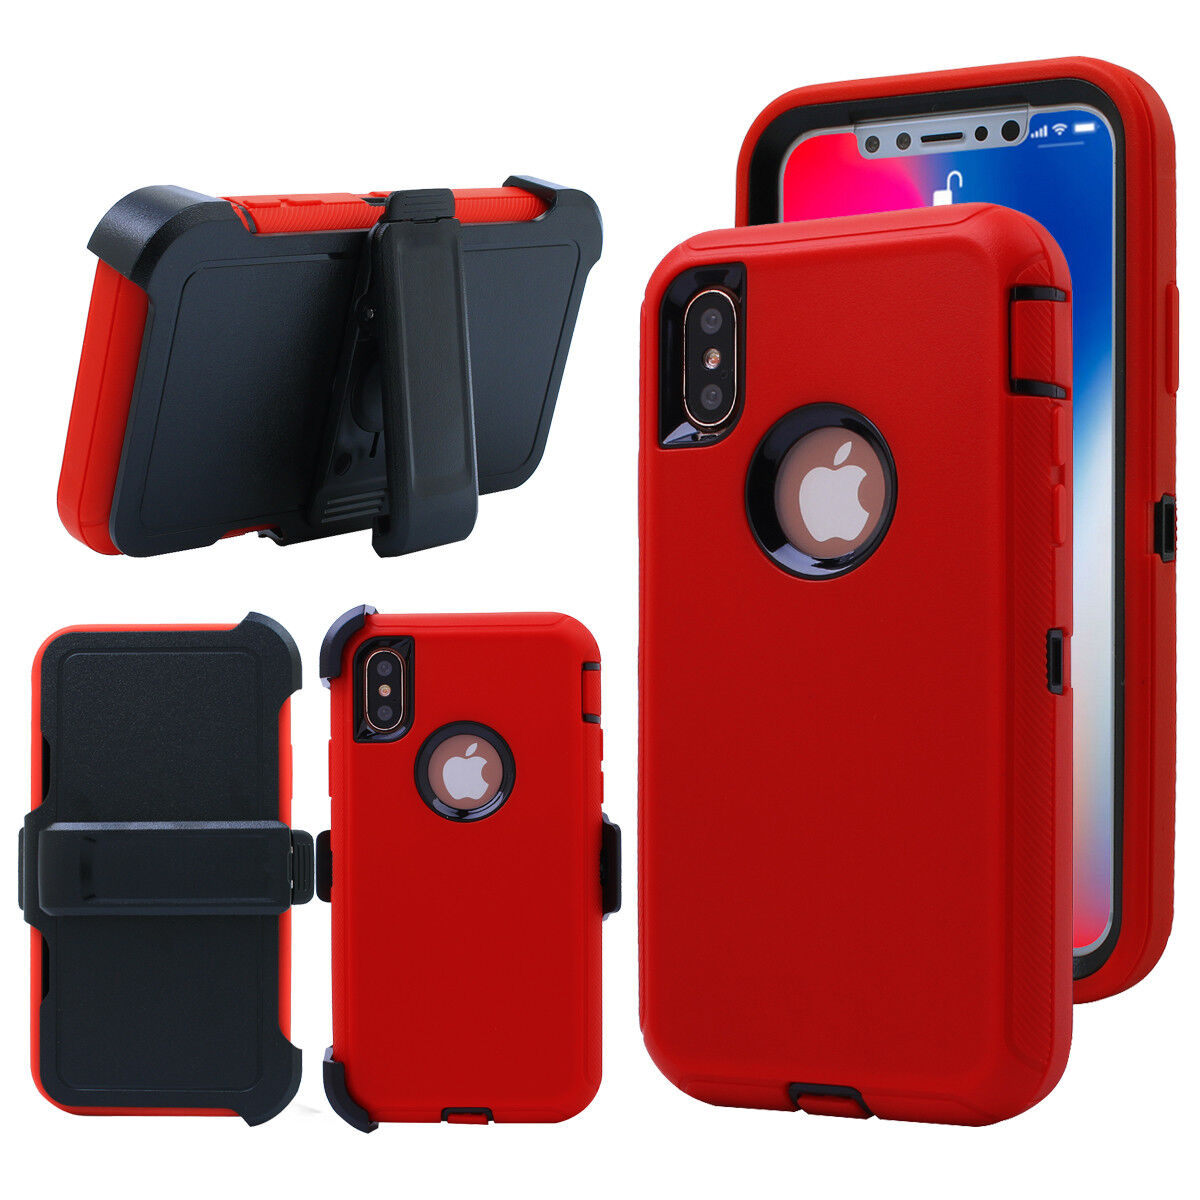 iPhone X 8 7 6s Plus Shockproof Hard Defender Protective Case Cover w/Belt Clip